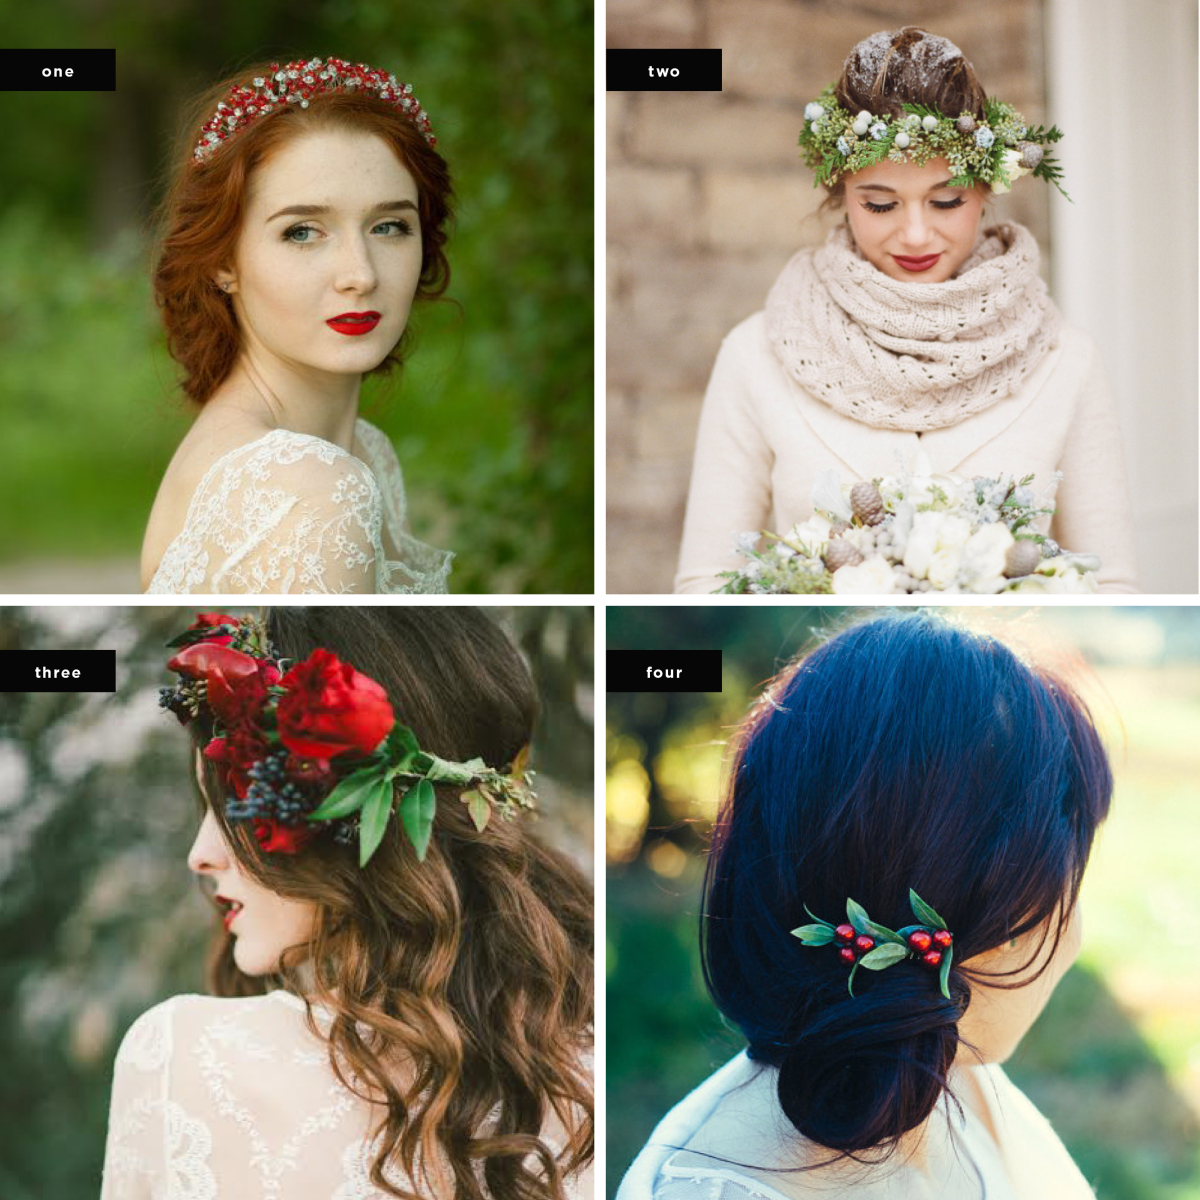 1. Wreath: AnnAccessoriesStudio, $127 / 2. Image Credit: Elizabeth Anne Designs / 3. Image Credit: Stephanie Rose Photography, Wreath: R Love Floral / 4. Hair Comb: KimArt, $30